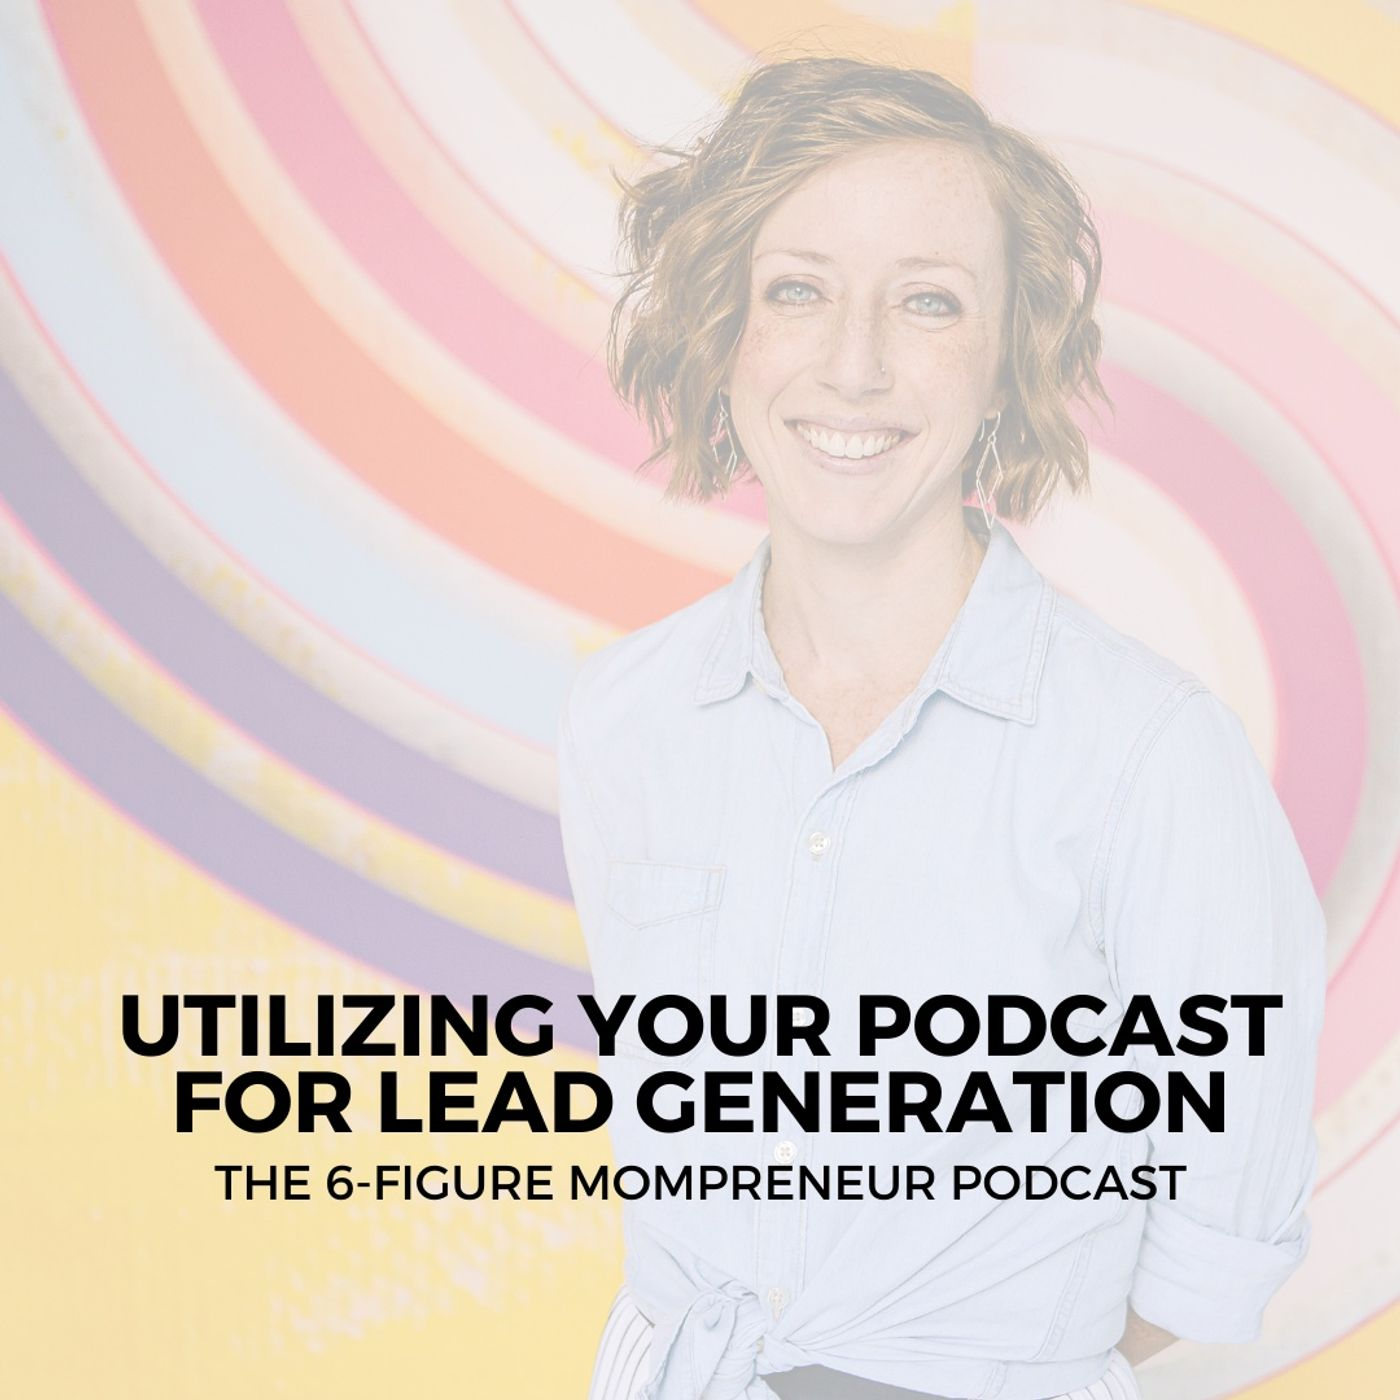 Utilizing your podcast for lead generation